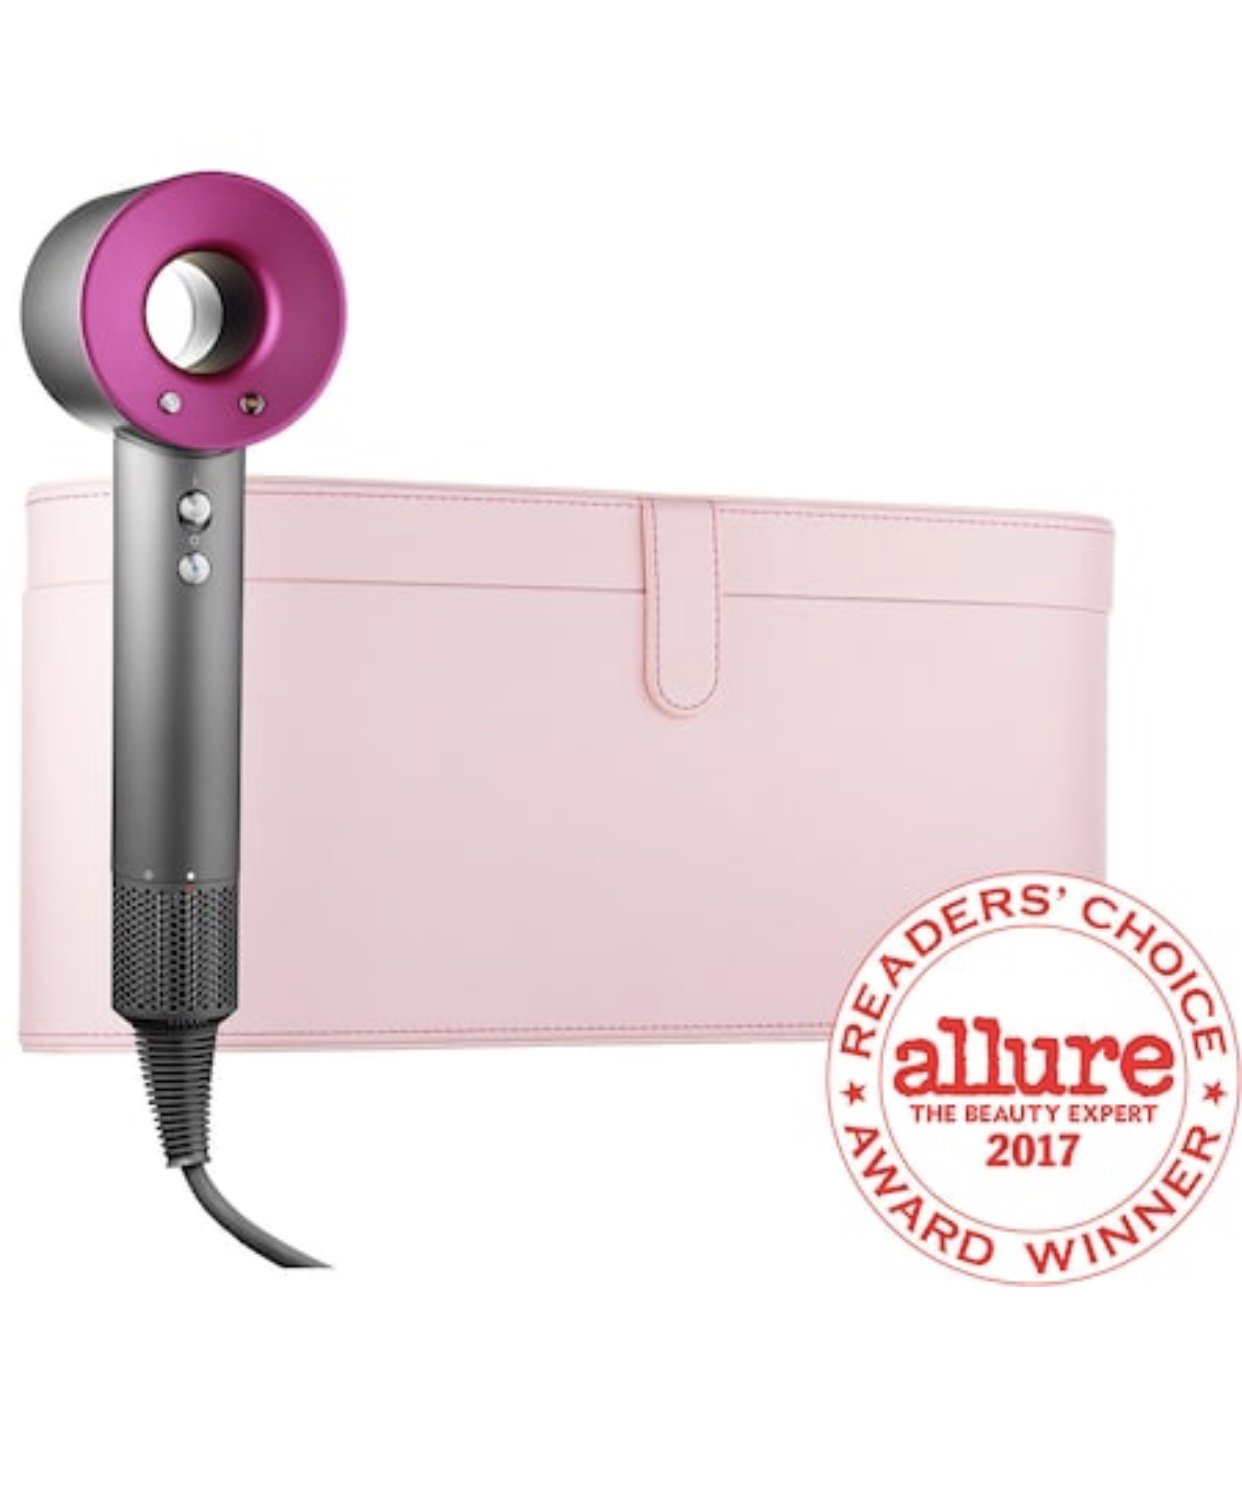 Dyson Supersonic Hair Dryer (Iron/Fuchsia) With Pale Pink Travel Case Limited Edition